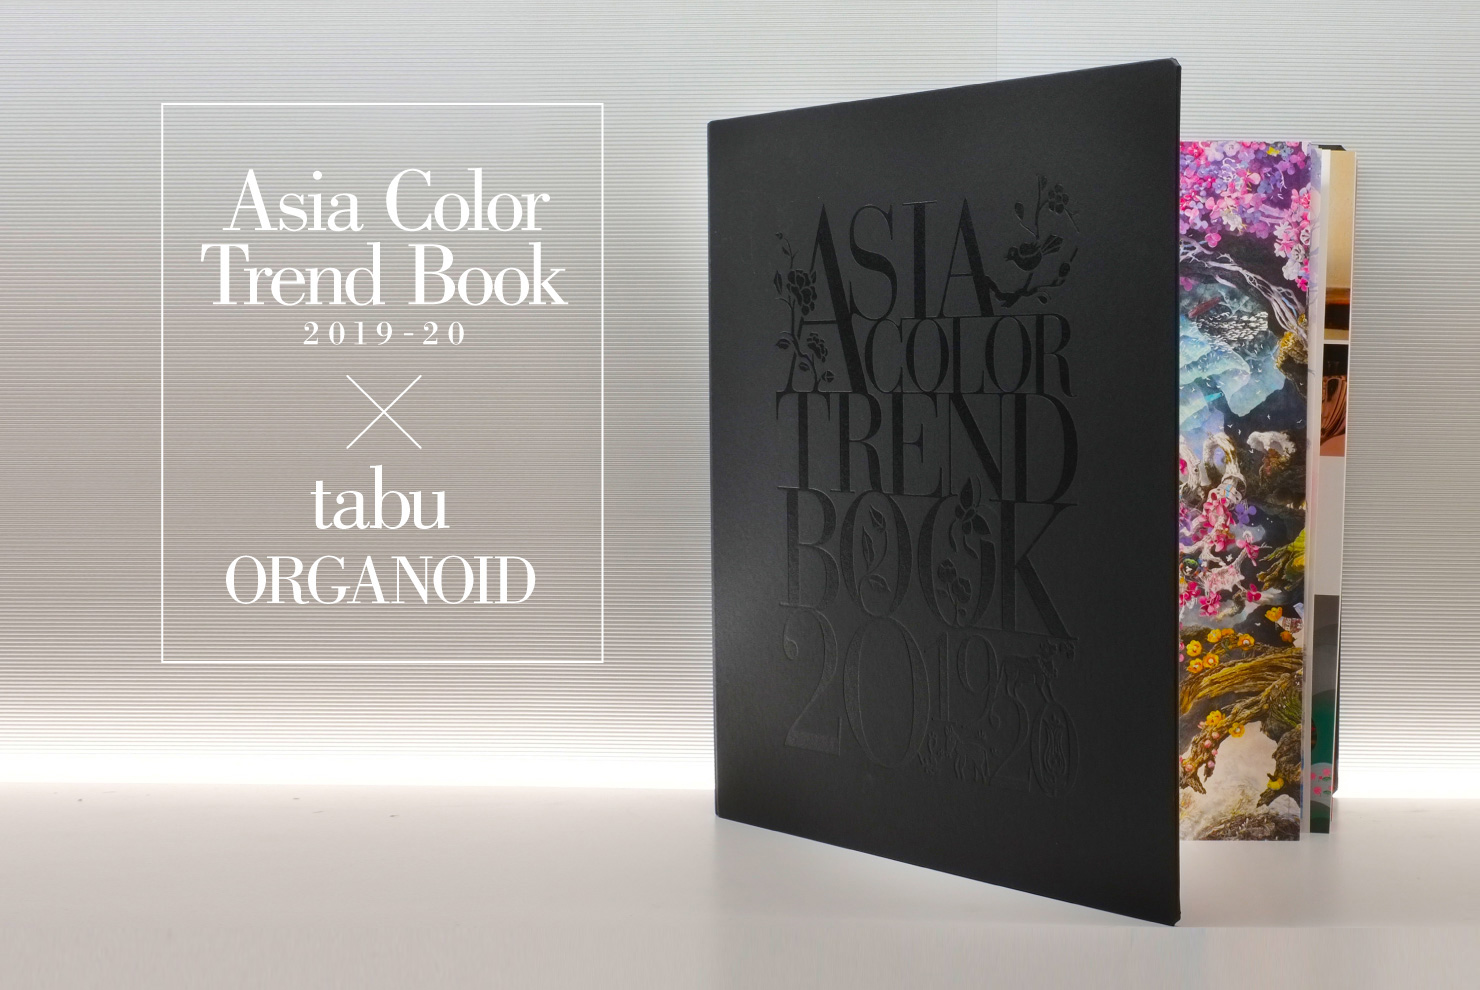 Asia Color Trend Book 2019-20 × tabu ORGANOID